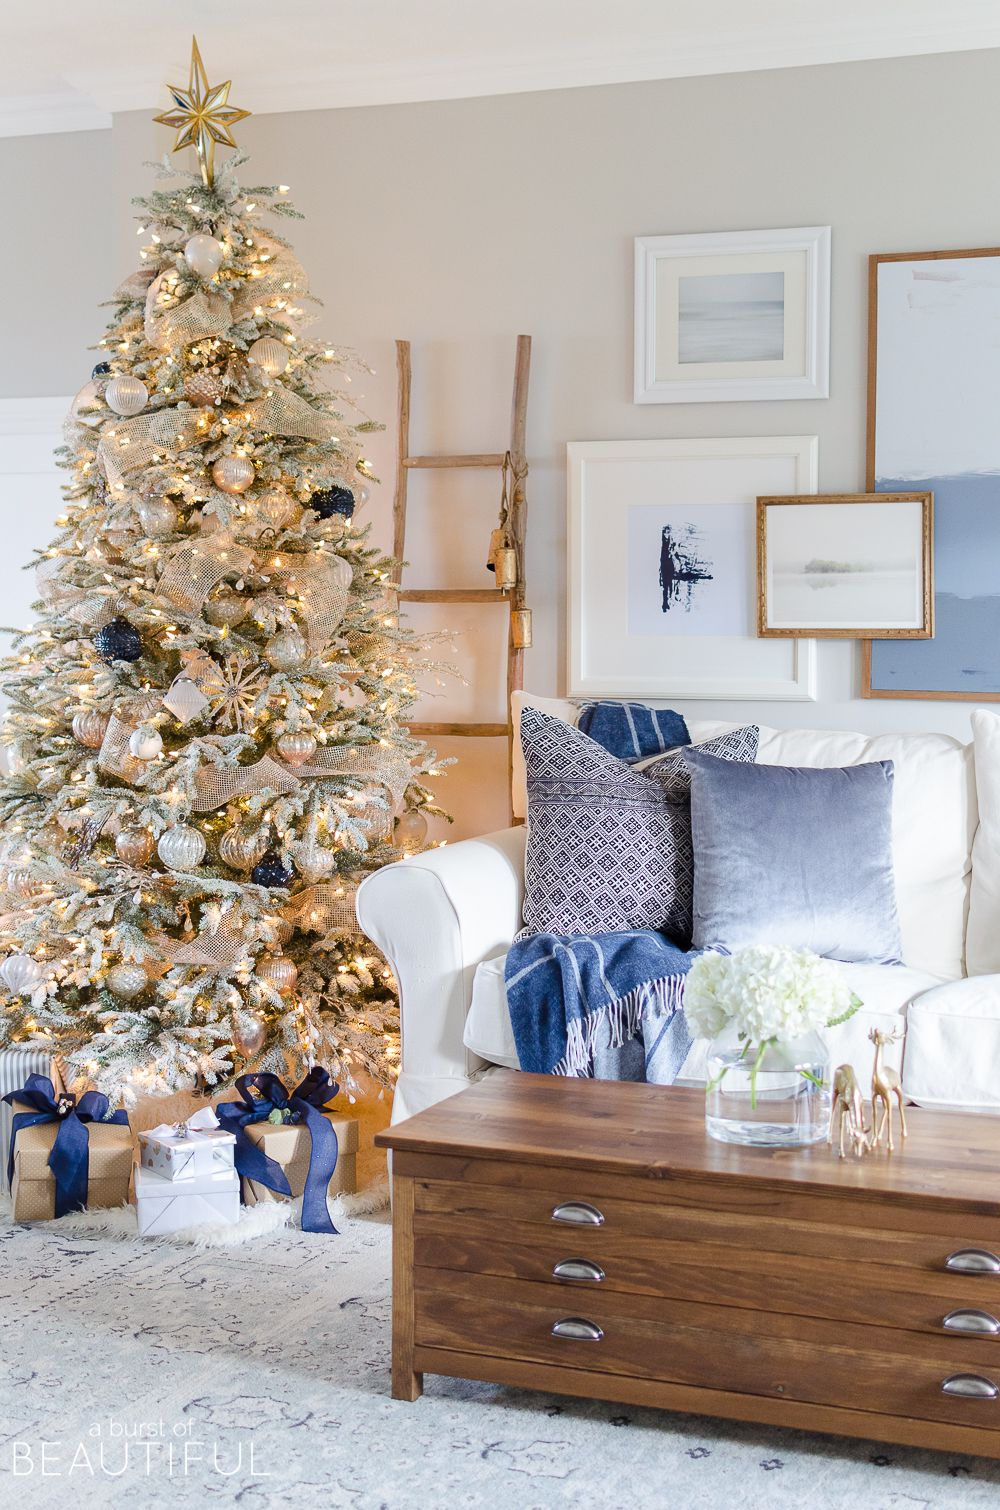 Phenomenal 21 Beautiful Ways To Decorate The Living Room For Christmas Home Interior And Landscaping Ferensignezvosmurscom